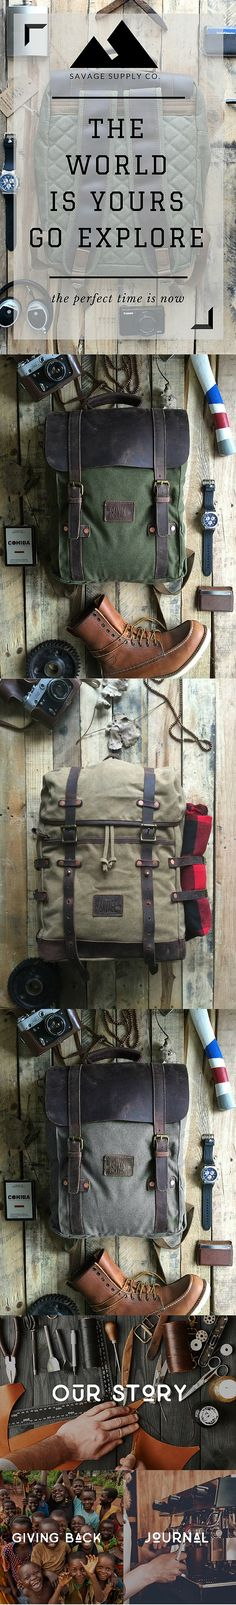 canvas and leather,backpack,waxed,backpack,waxed canvas,duffle bag,canvas rucksack,canvas laptop bag,rucksack,laptop bag,vintage backpack,canvas backpack,leather backpack,waxed canvas bag,,Bags & Purses, Backpacks, Canvas backpack men, hipster backpack, mens backpack, canvas rucksack, laptop bag, school backpack, navy blue,green,grey,black,beige,tan,outdoor backpack, travel backpack,Canvas Duffel Bag, Mens Duffle Bag, Waxed Duffel, Leather Duffle, Duffle Bag Men, Men Duffel Bag,Luggage &